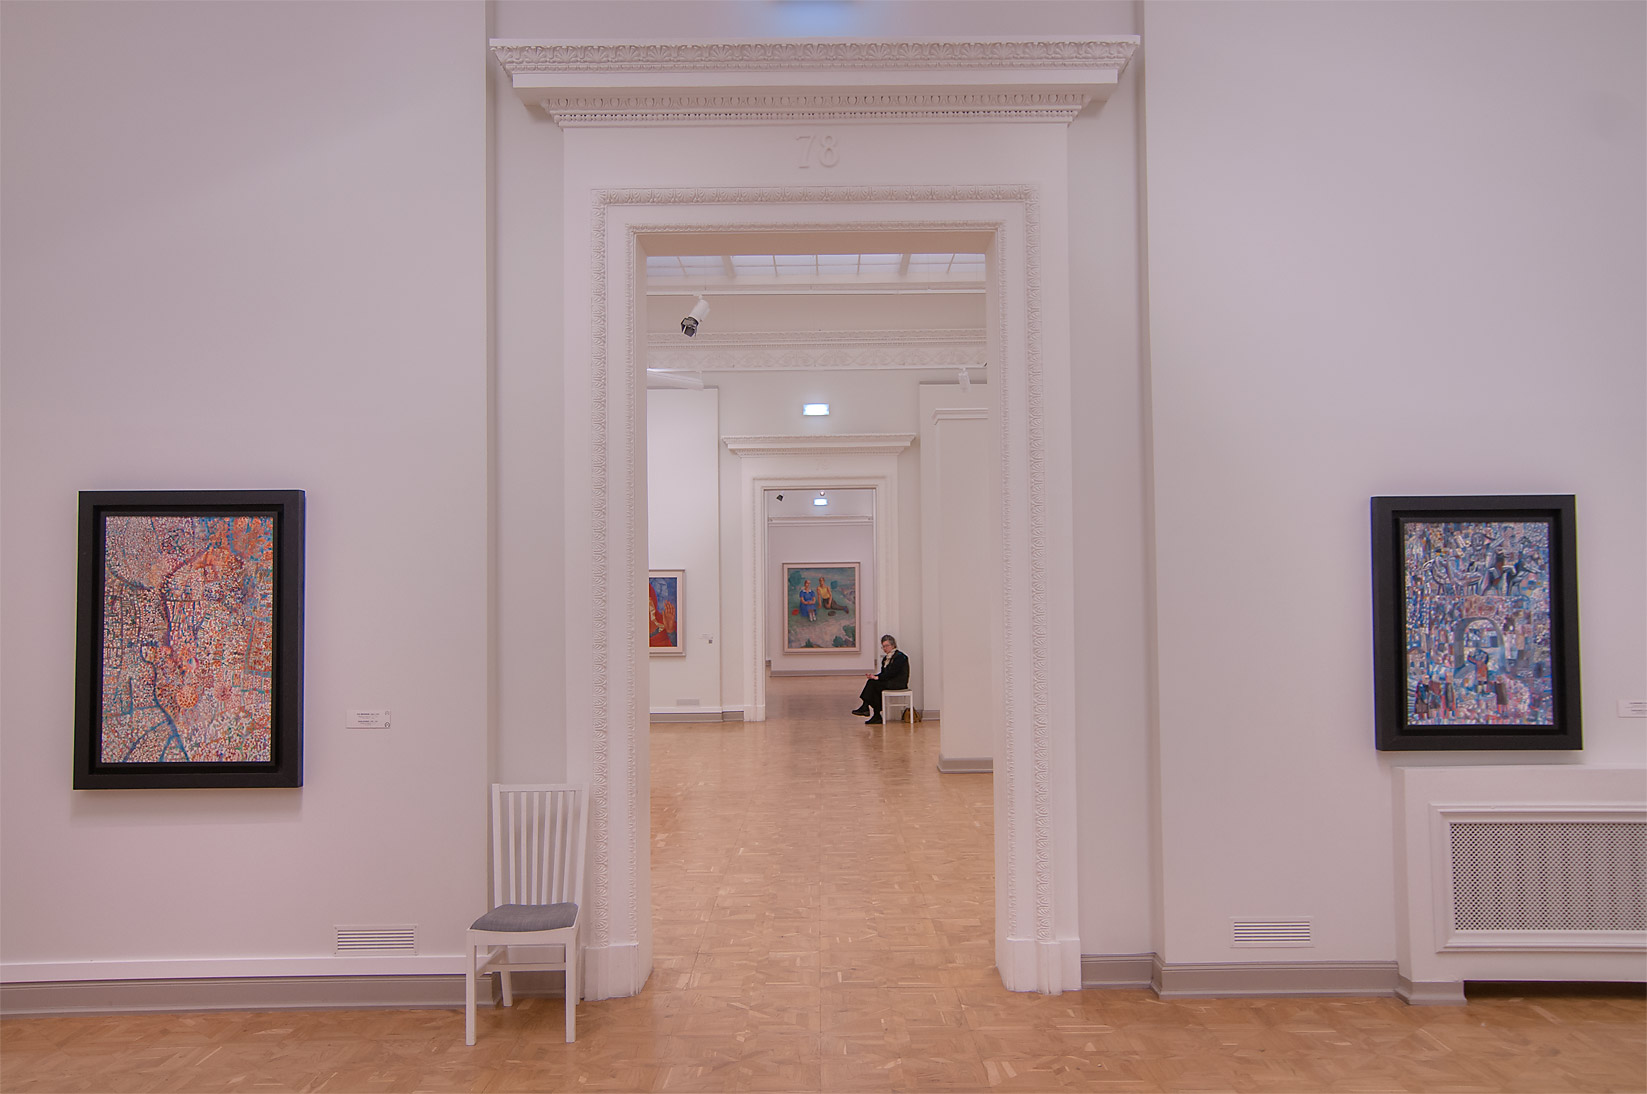 Corridor of Benois Wing of Russian Museum. St.Petersburg, Russia